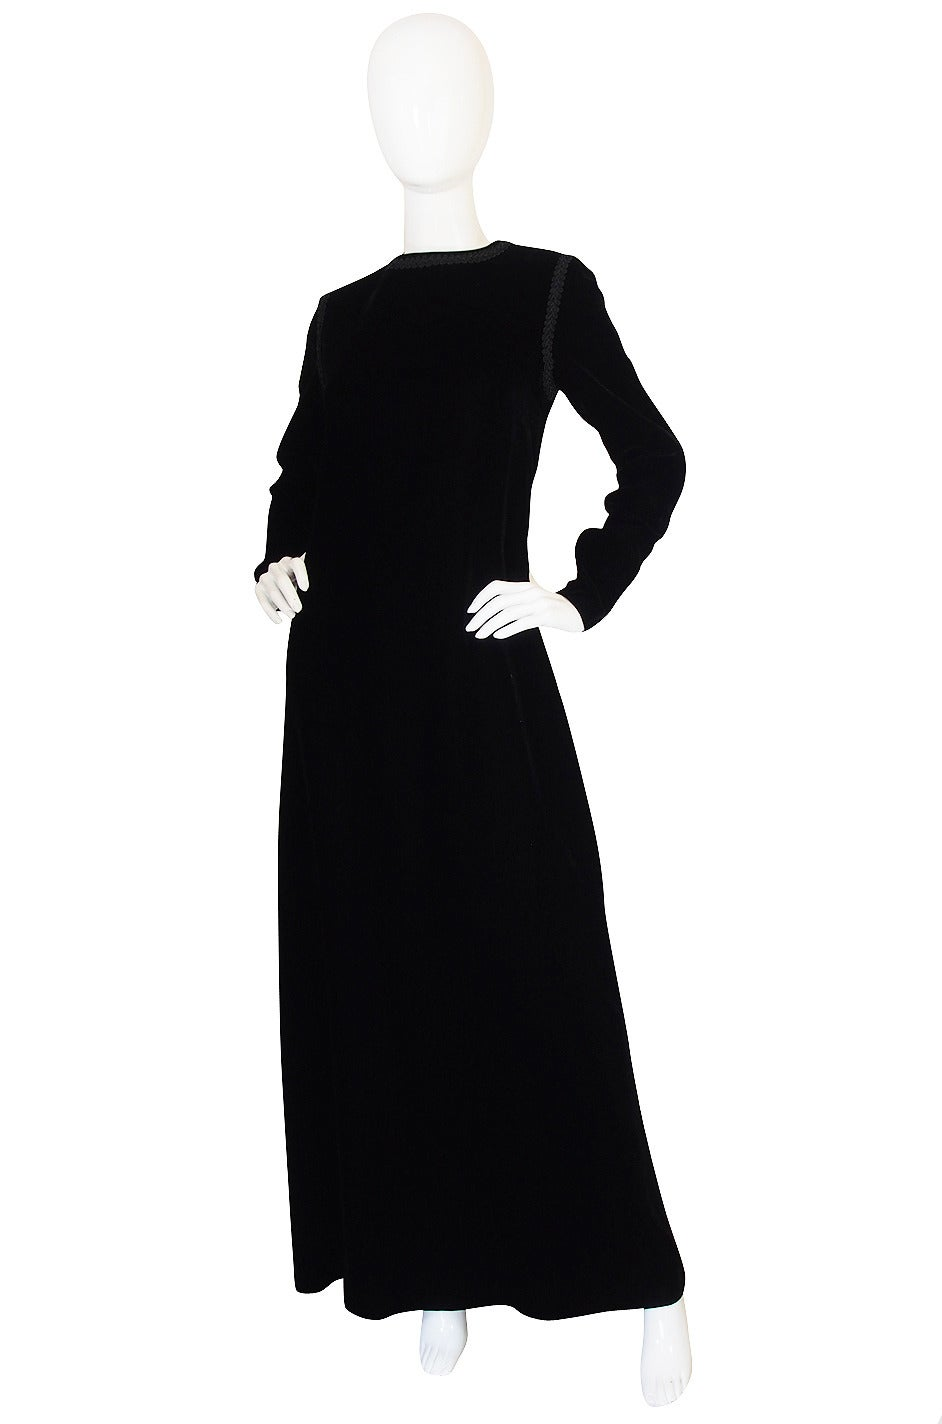 1970s Black Velvet & Braid Yves Saint Laurent Dress 3